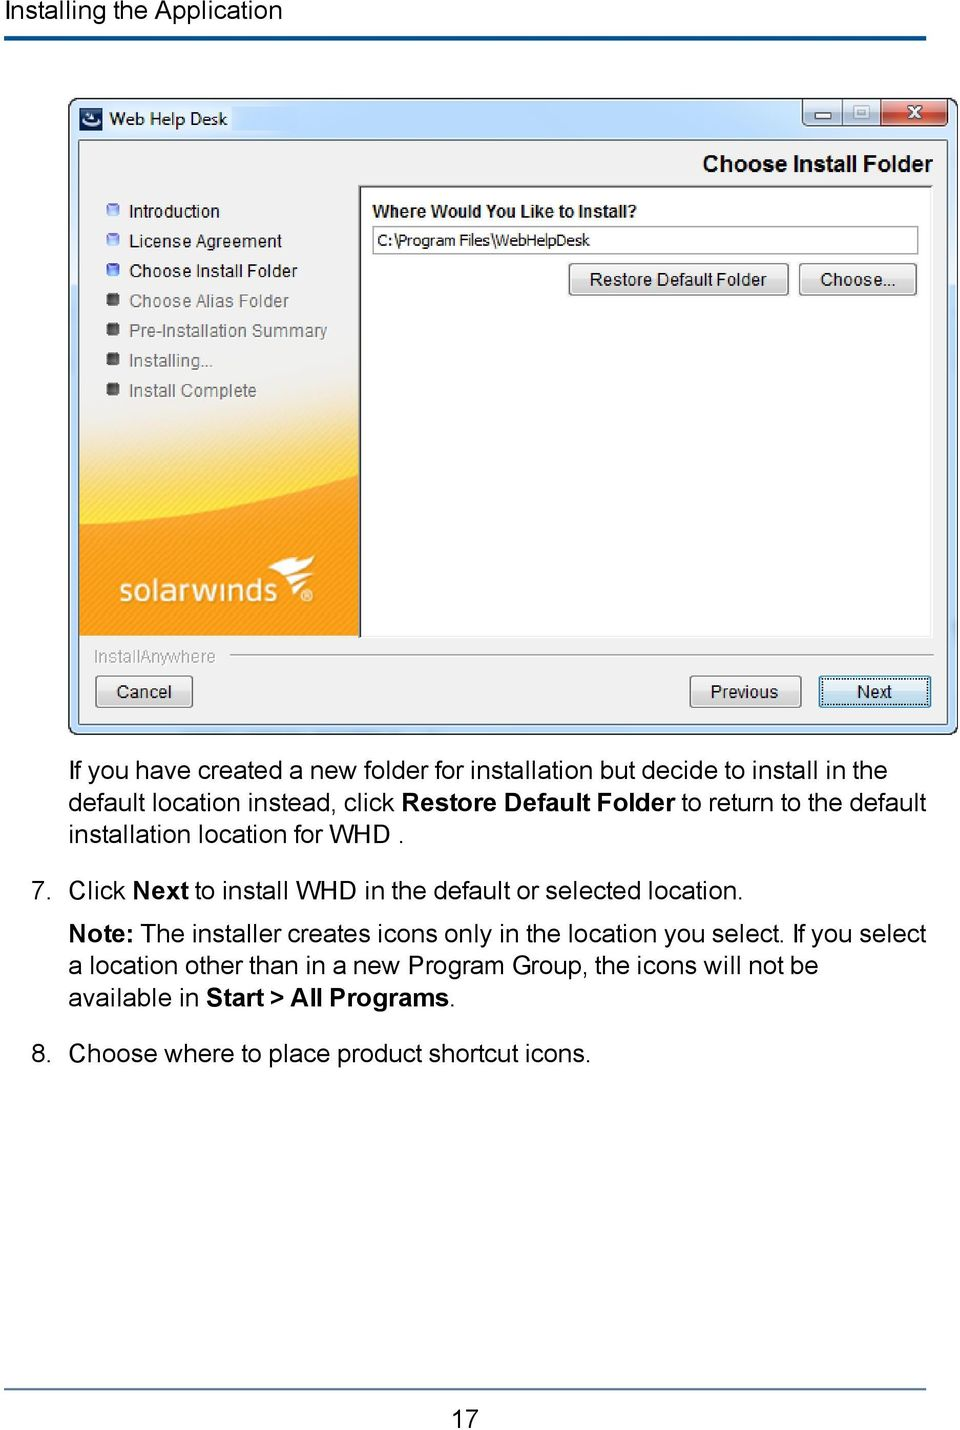 Click Next to install WHD in the default or selected location. Note: The installer creates icons only in the location you select.